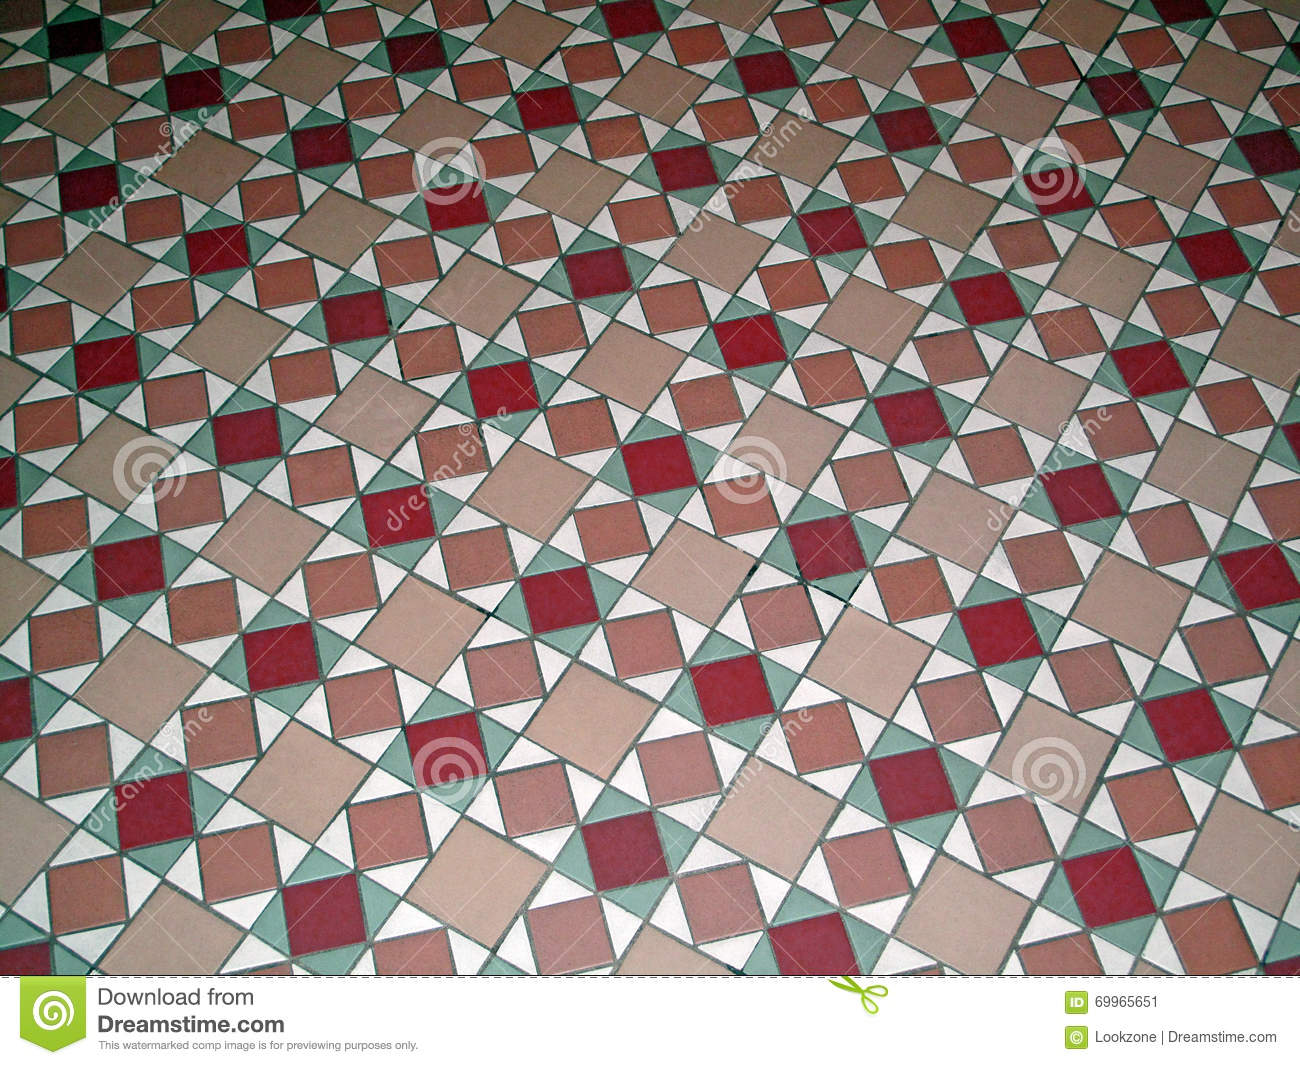 Antique Ceramic Tile Pattern Floor Stock Image - Image of decorative ...